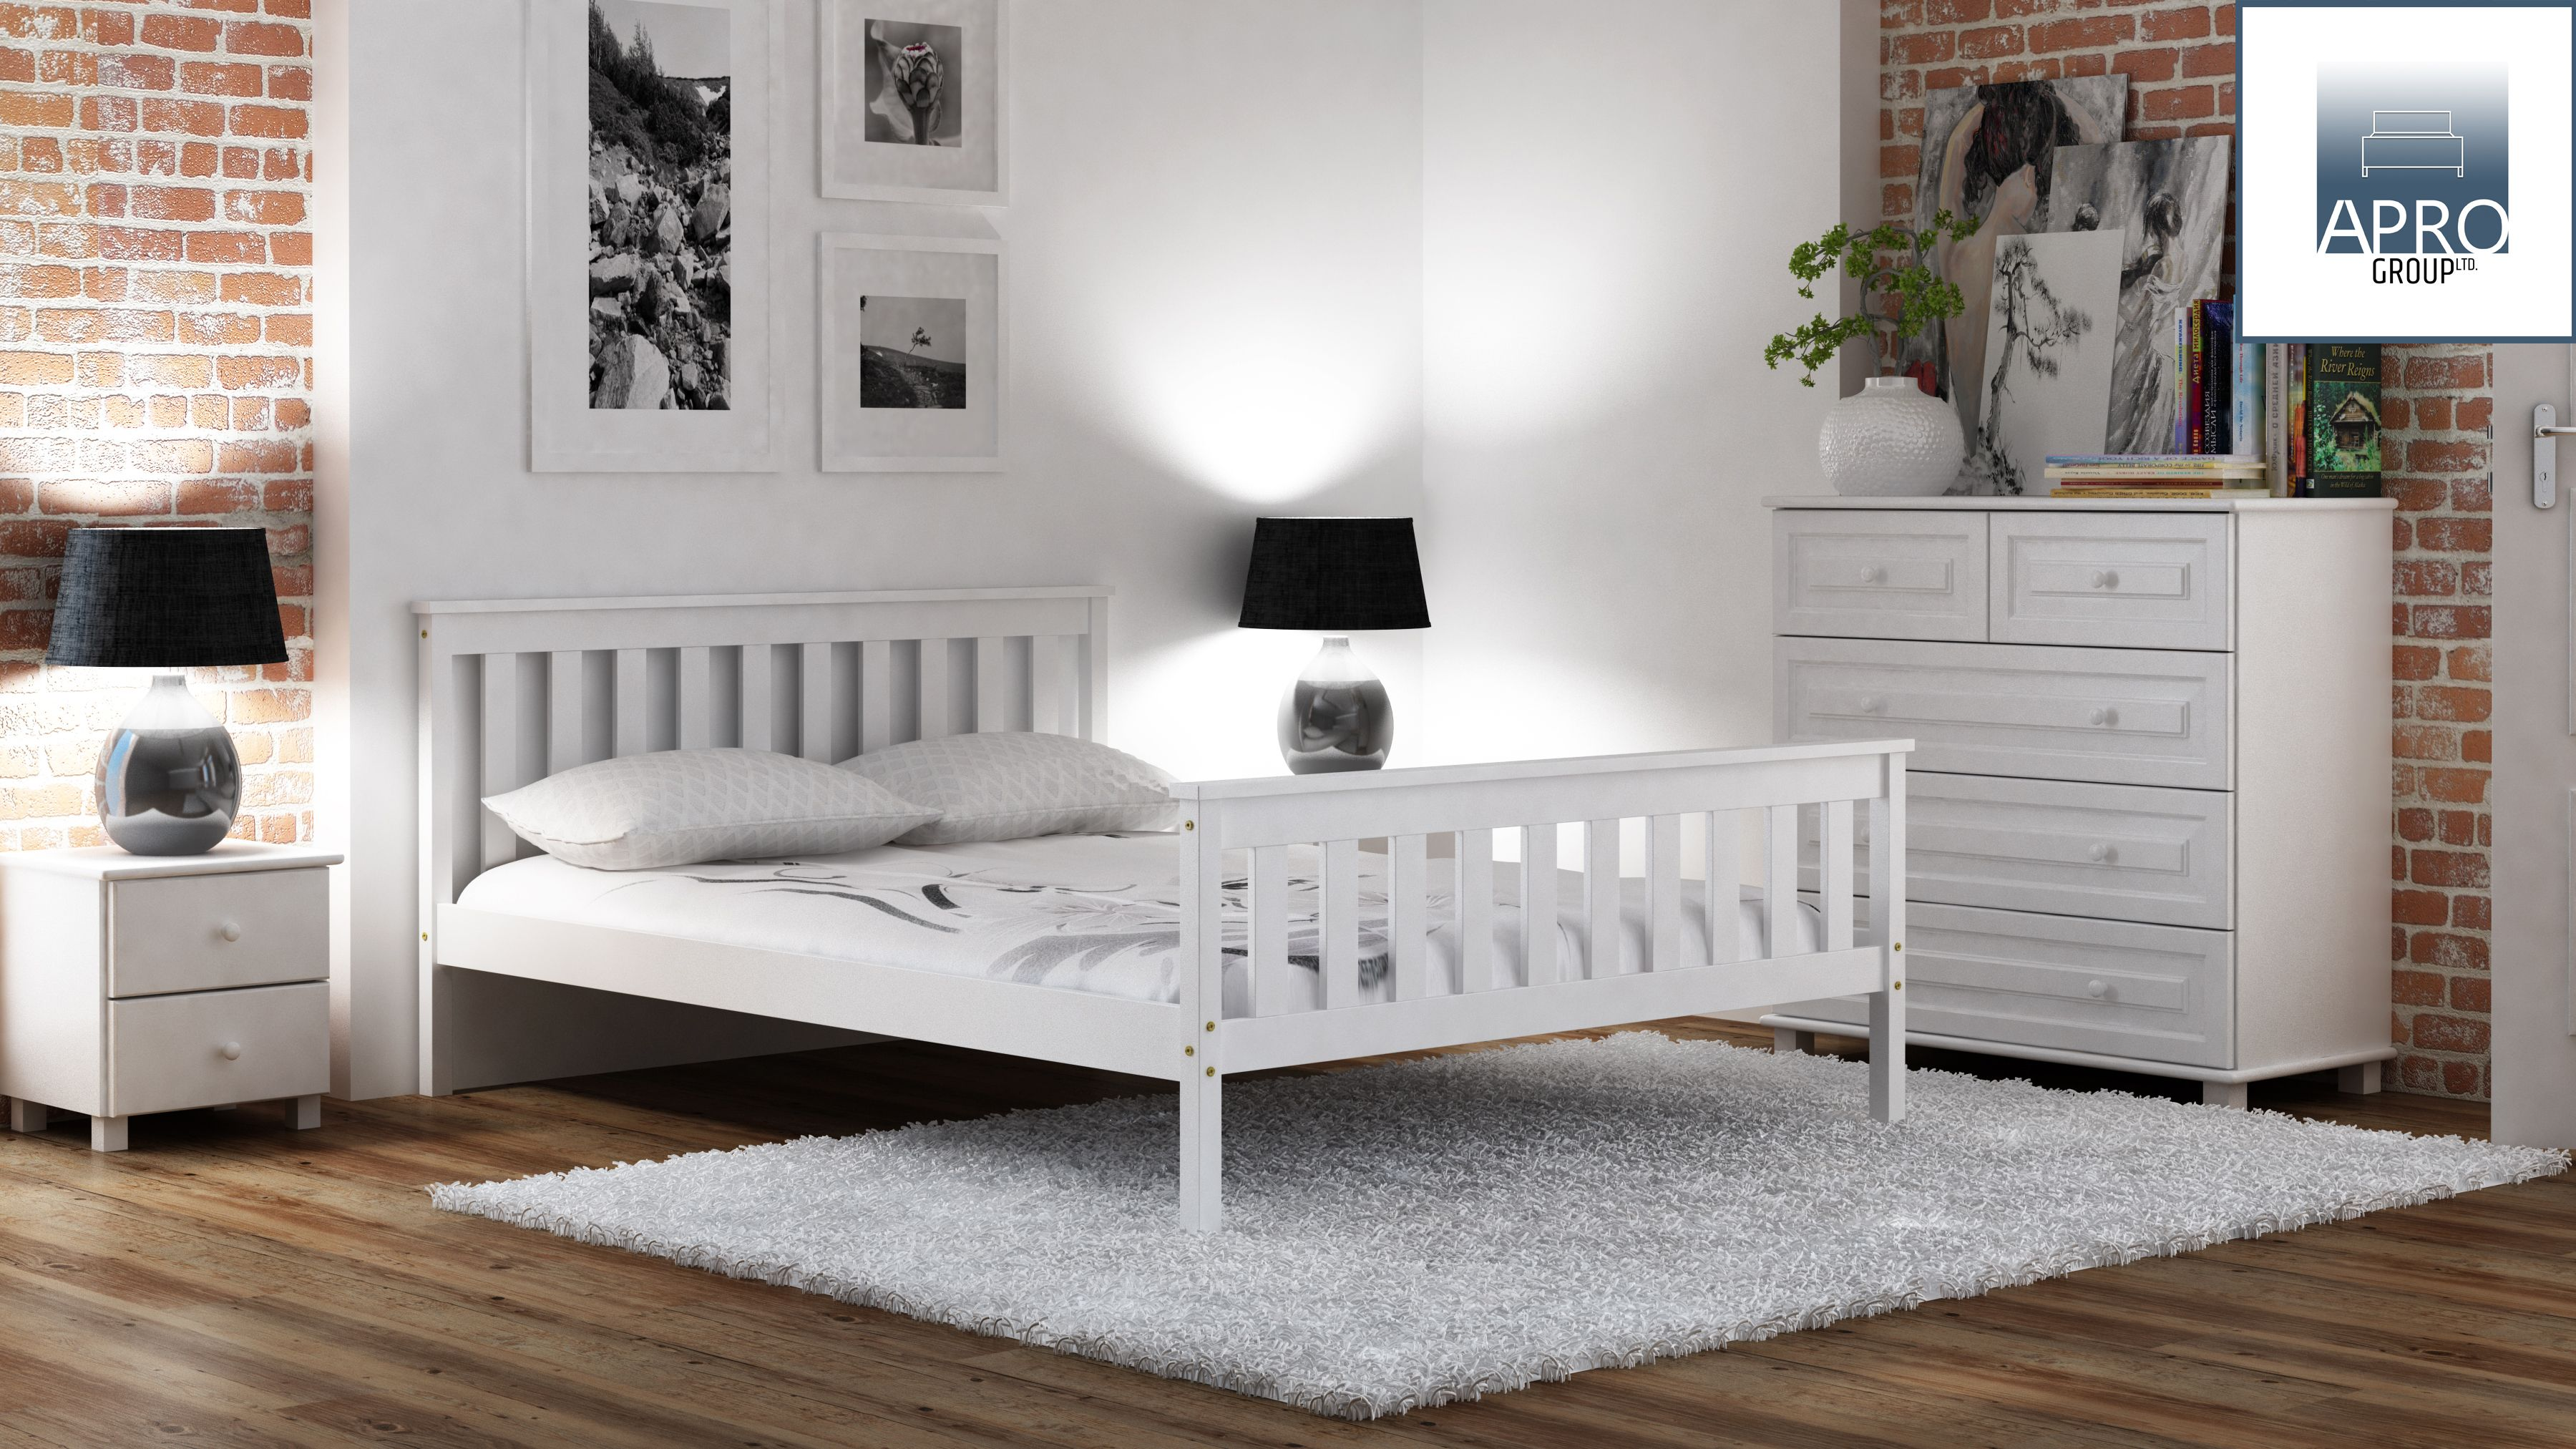 Details about Pine Wood Bed White 4ft Small Double 120x190cm Teen ...